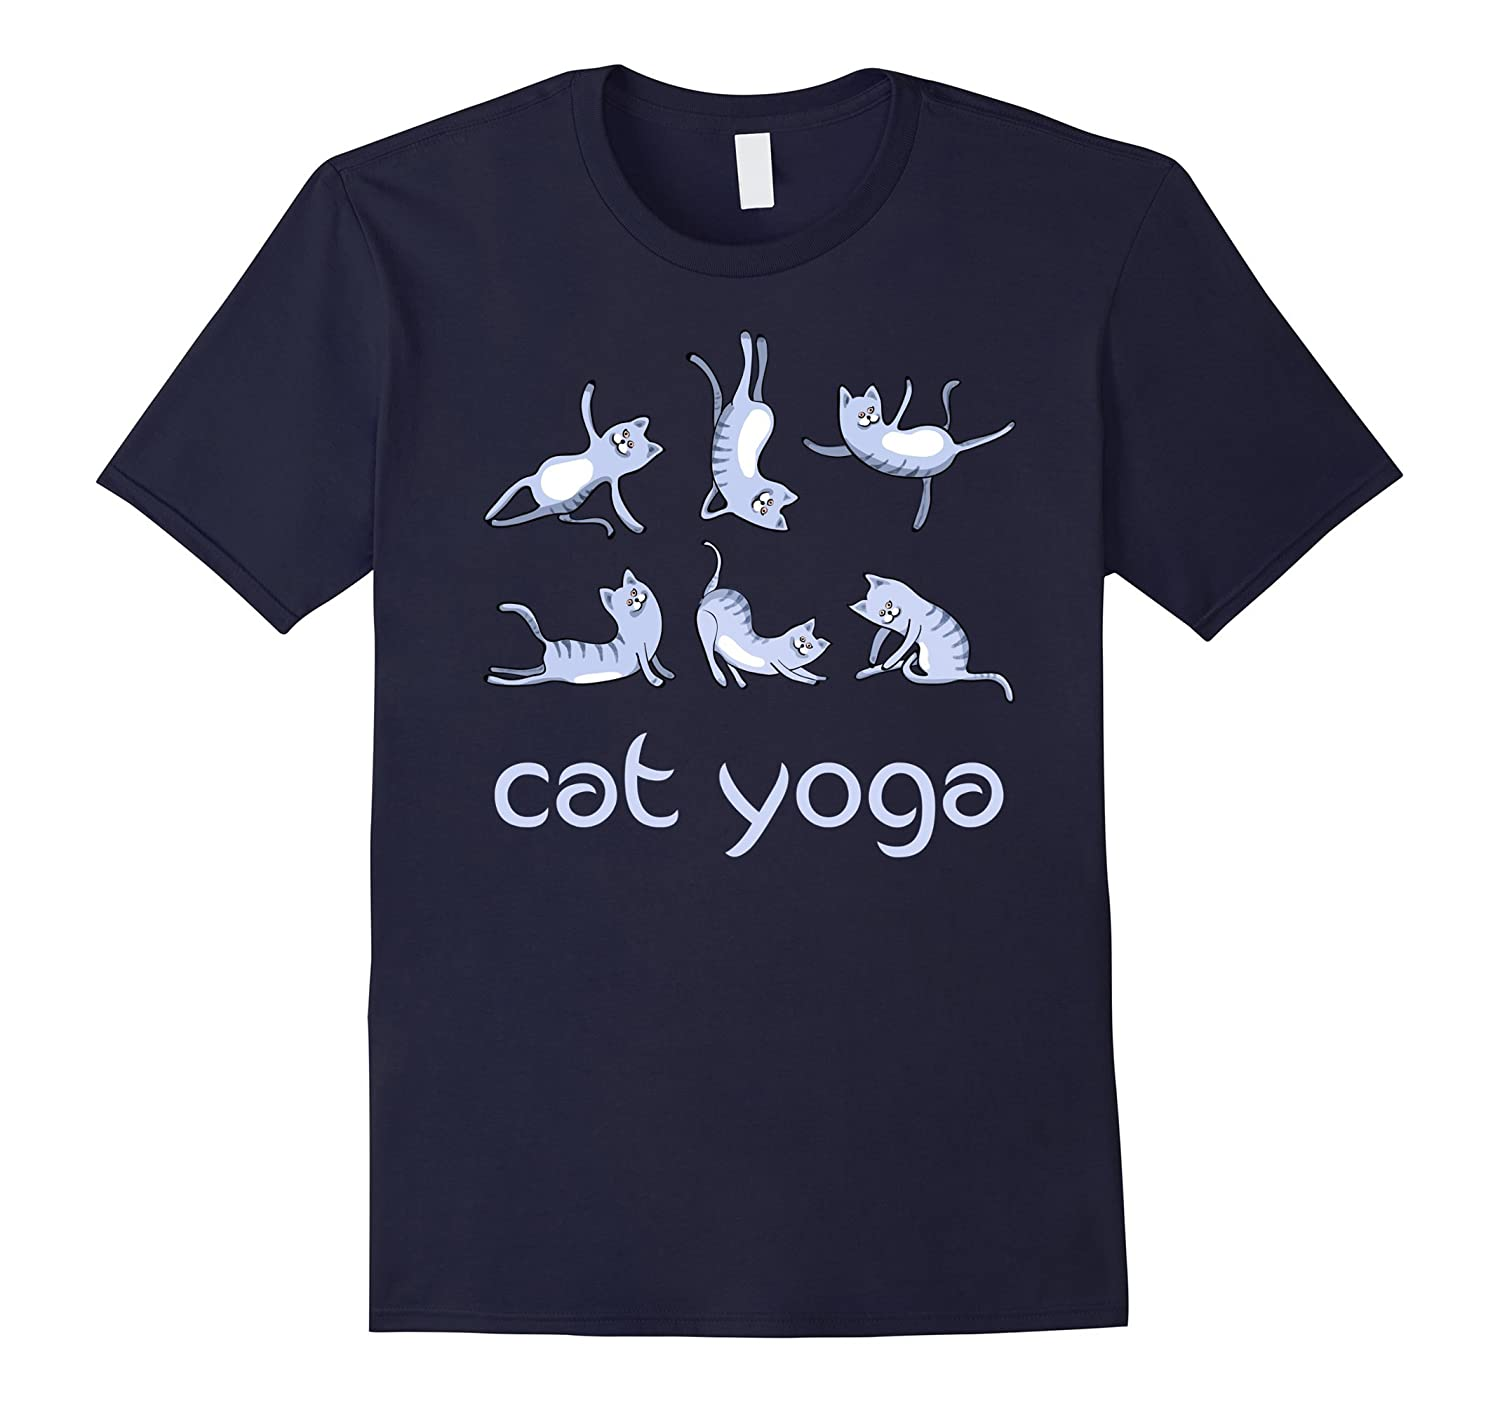 cat yoga humor buddha hindu shanti gym T-Shirt fun-TJ